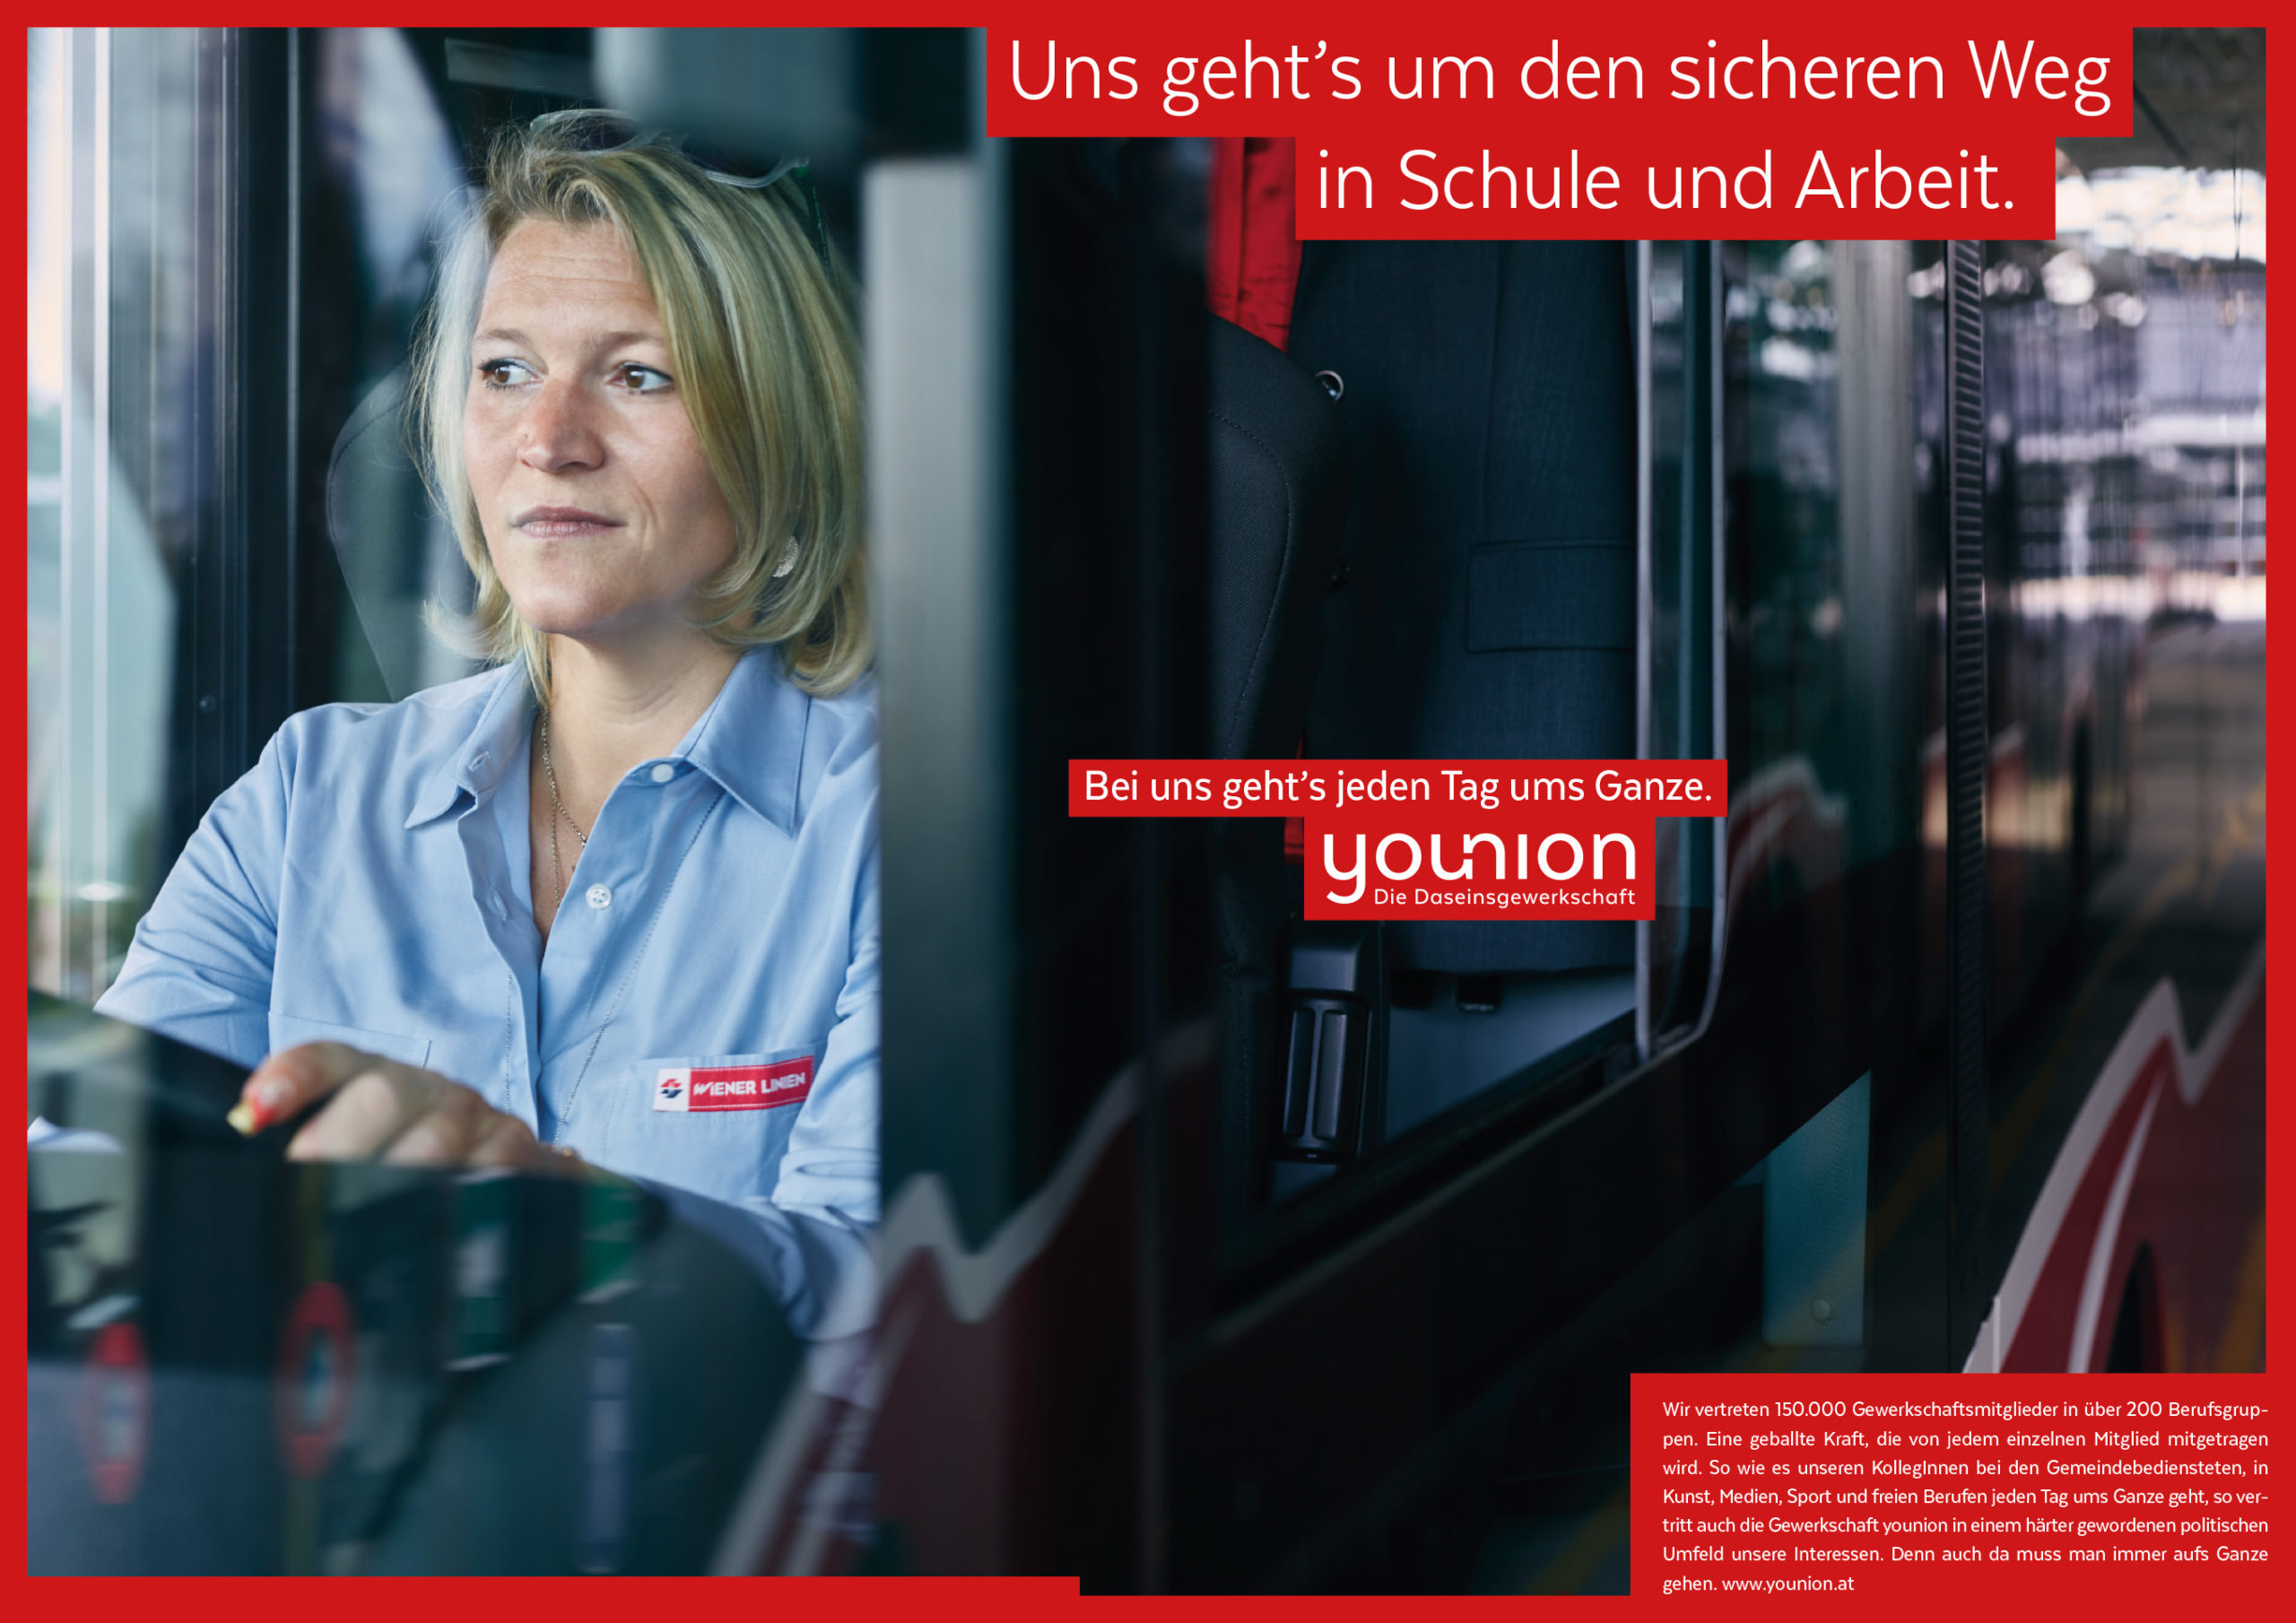 Younion-Kampagne-Sujet-1-scaled.jpg